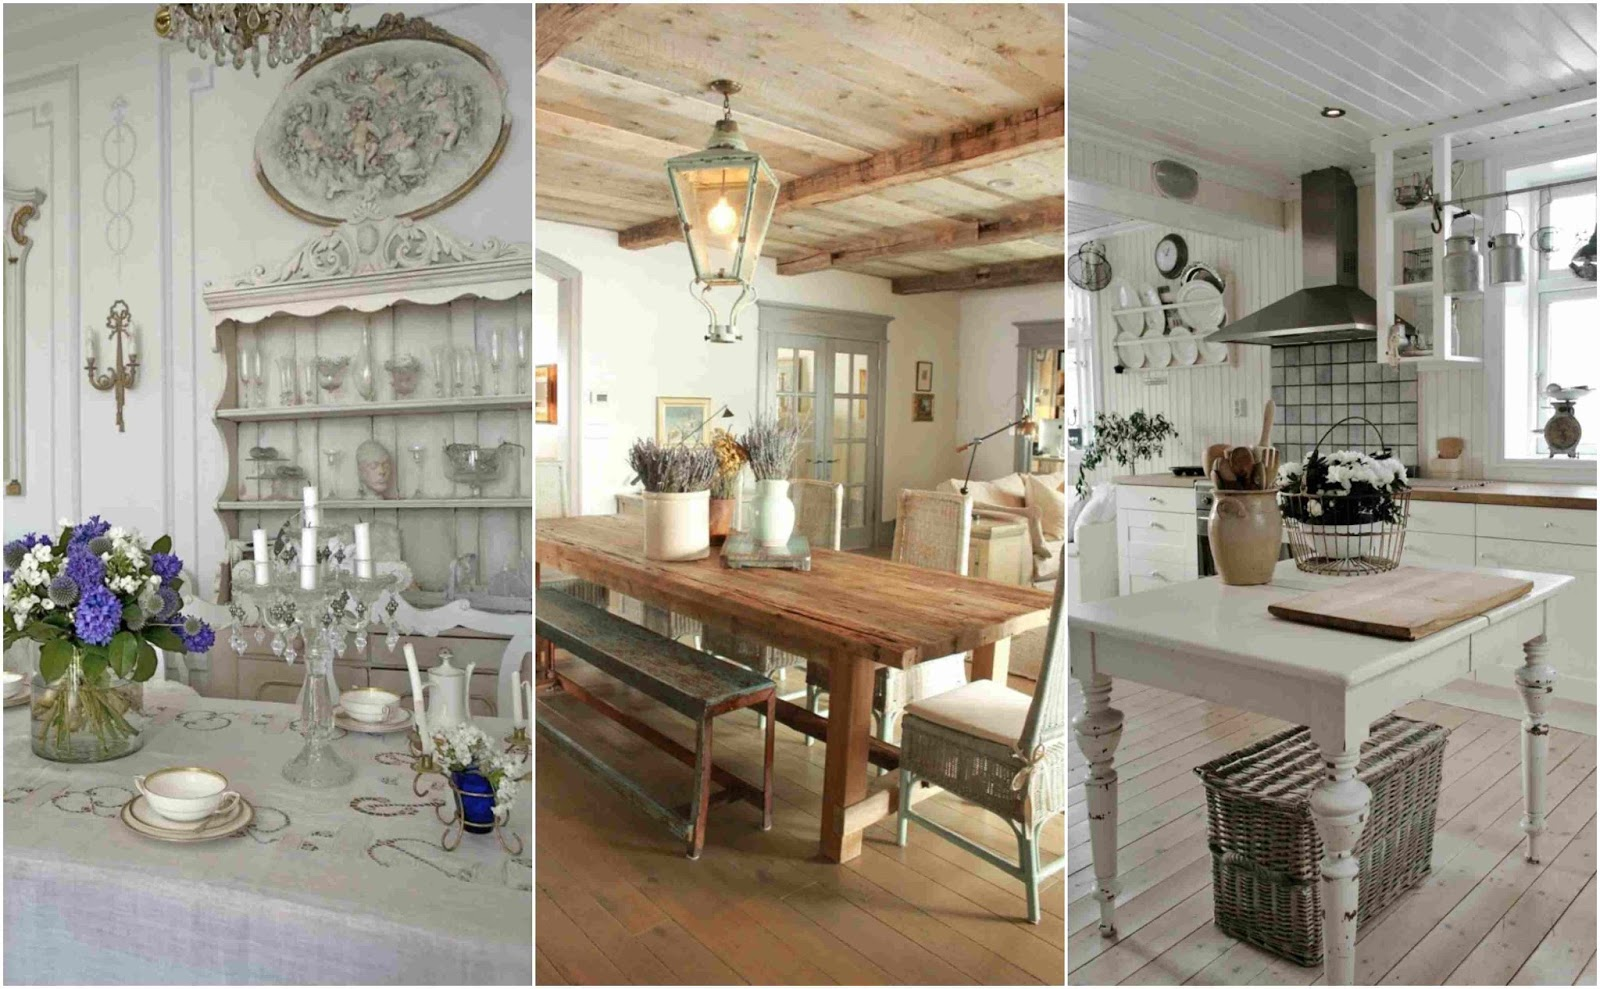 Kitchen Design In The Style Of Provence French And